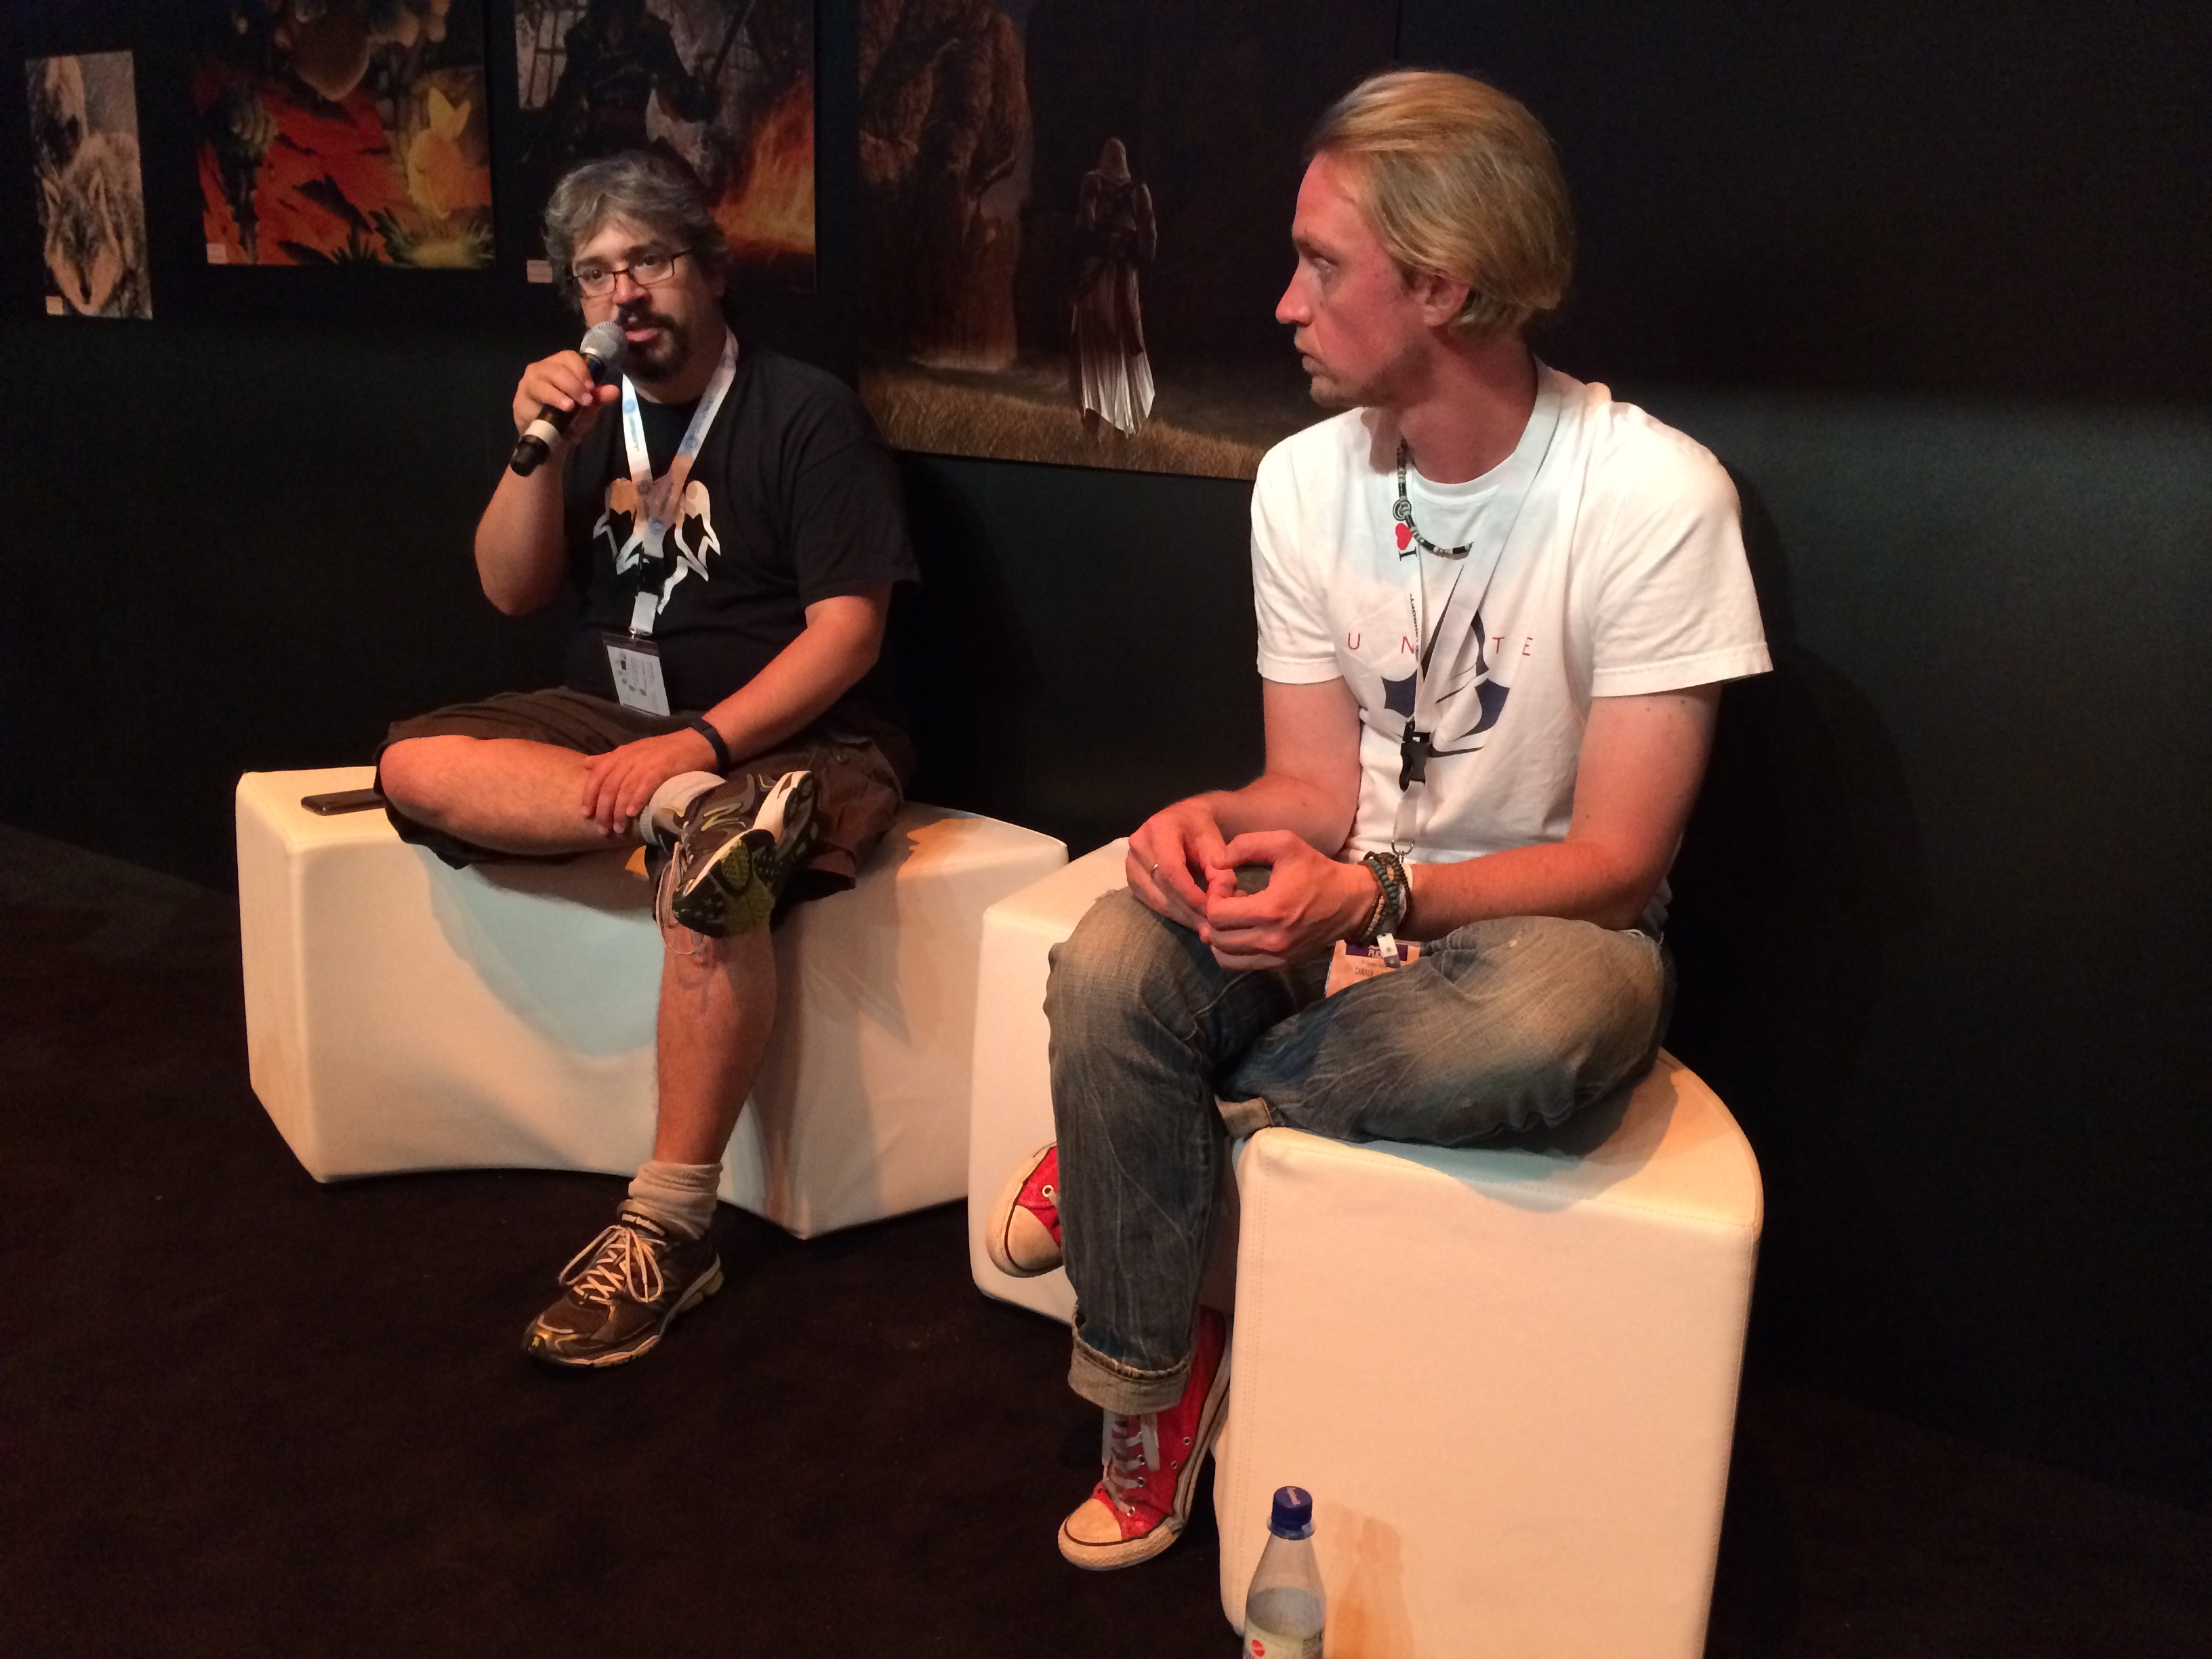 Benjamin and Gabe Discuss Assassin's Creed: Unity and respond to Q&A by attendees.